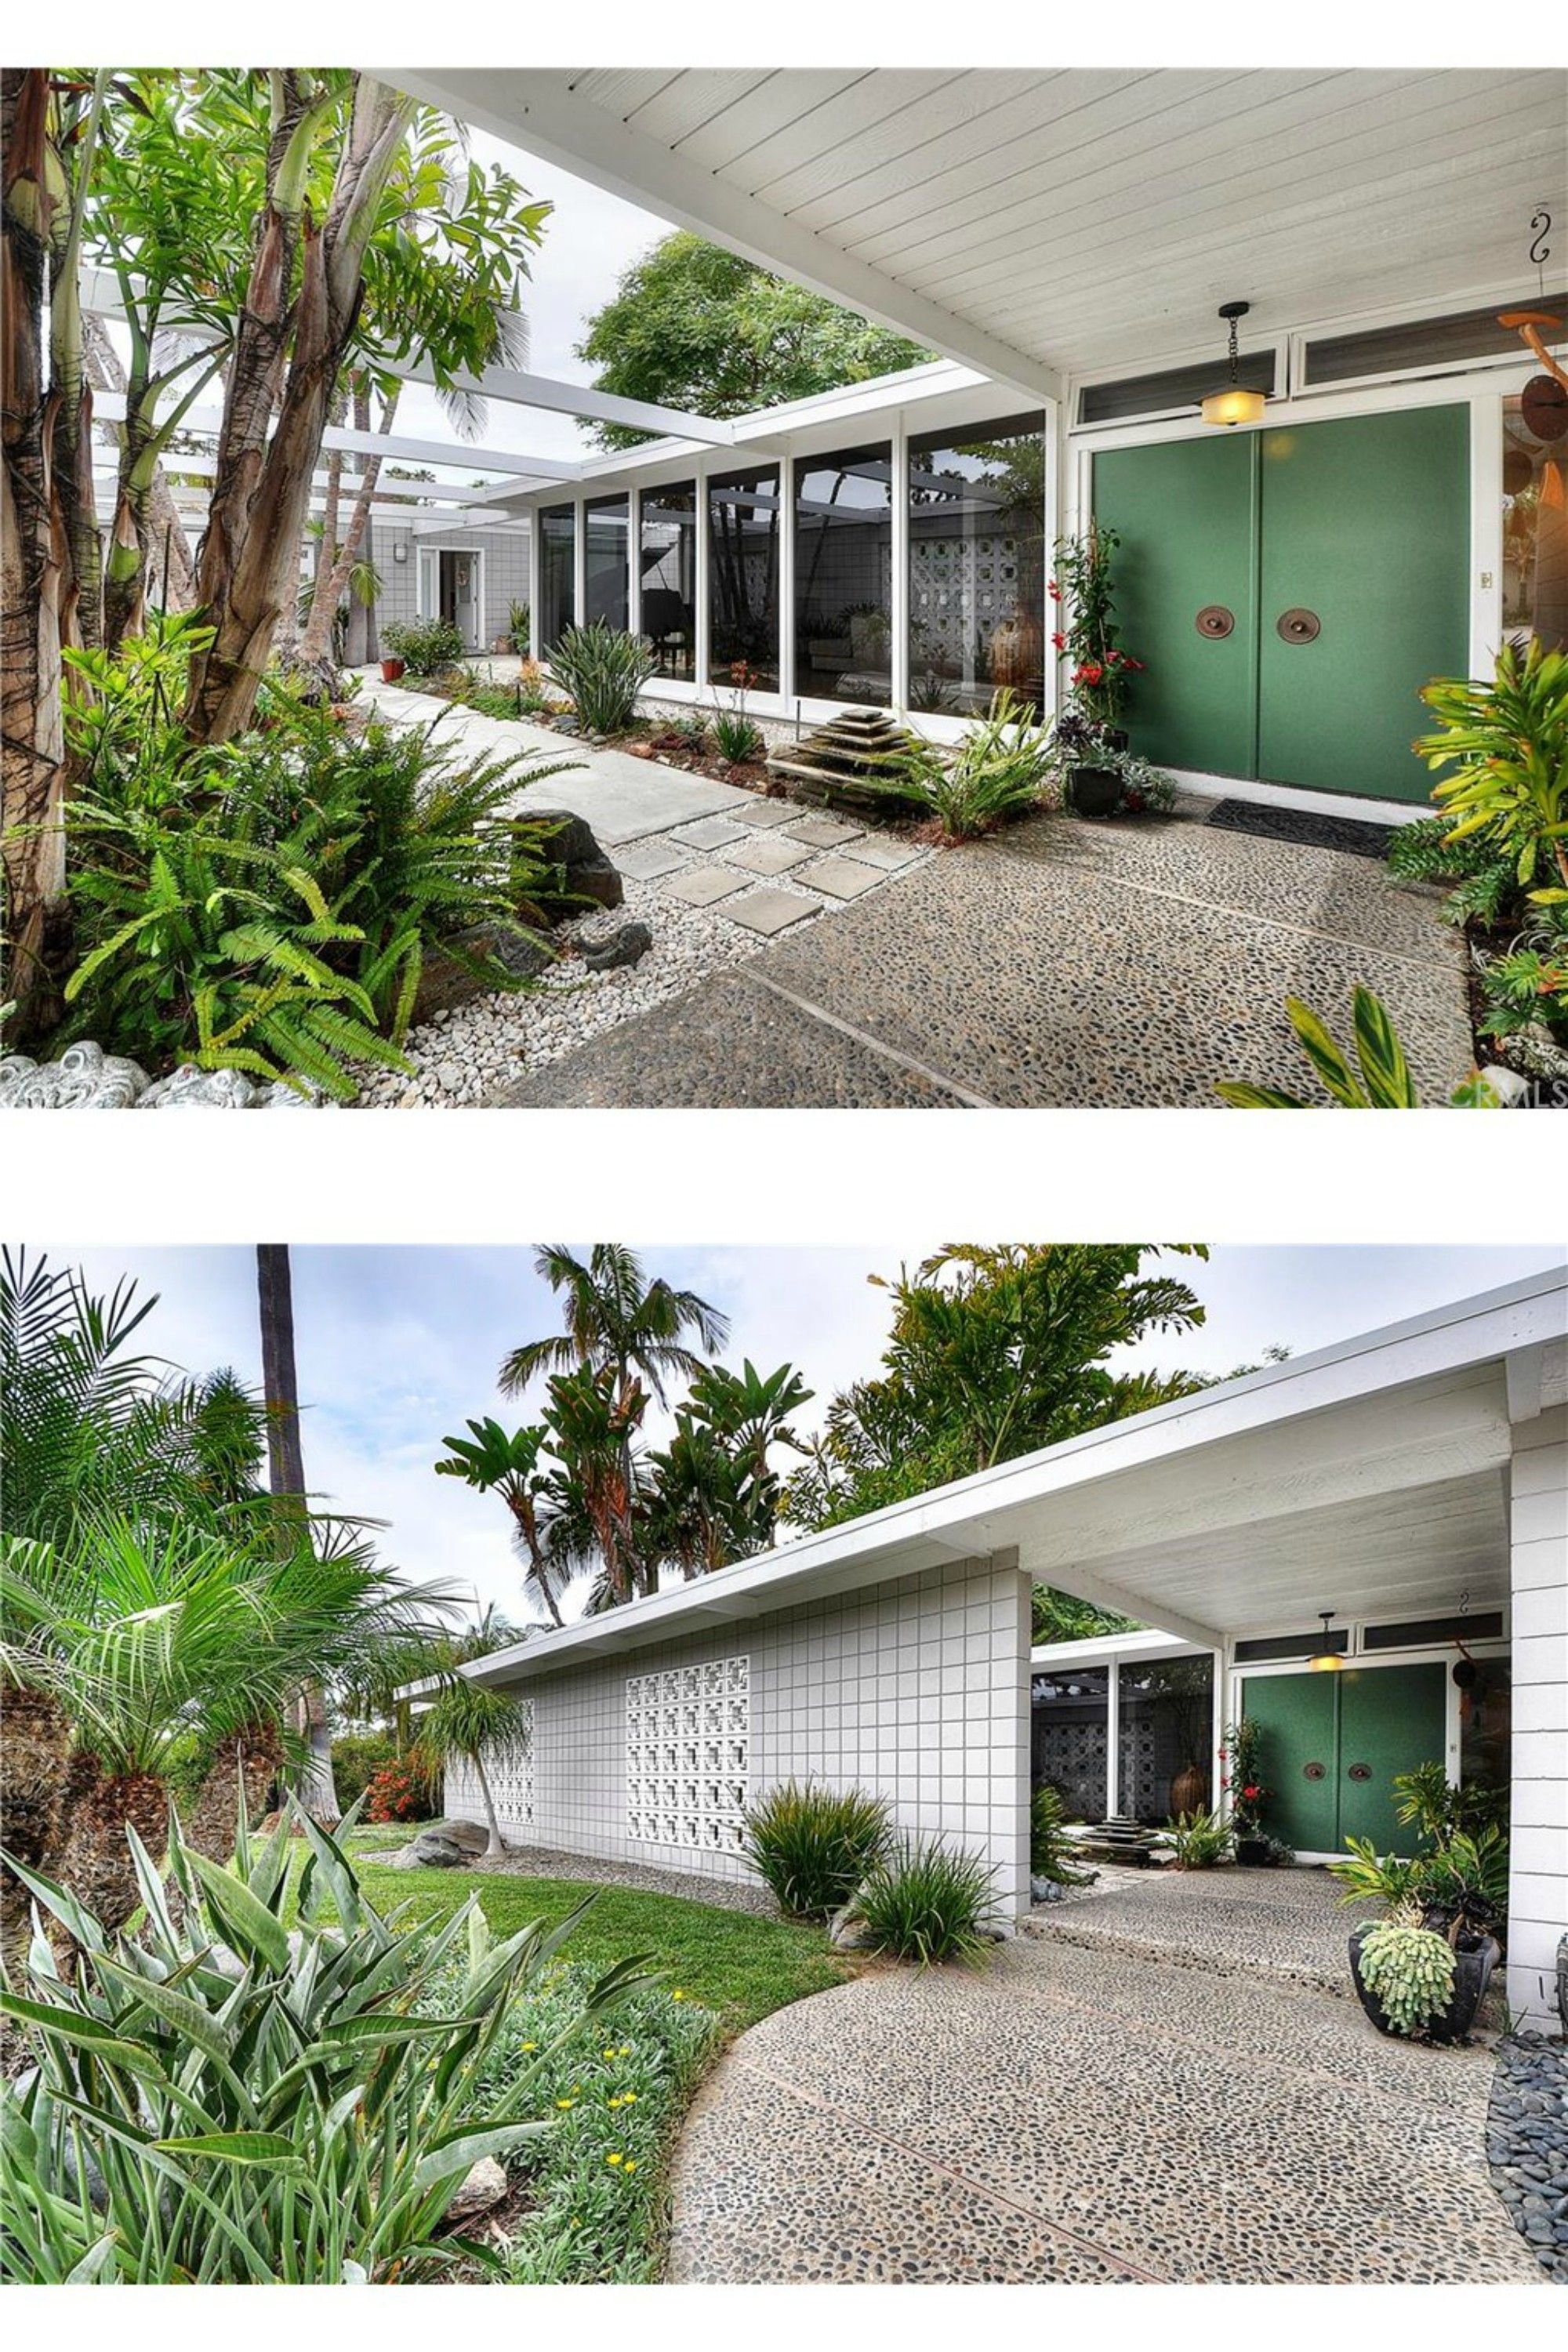 33 Awesome Mid Century Modern Exterior Lighting Mid Century Modern Exterior Mid Century Architecture Mid Century House